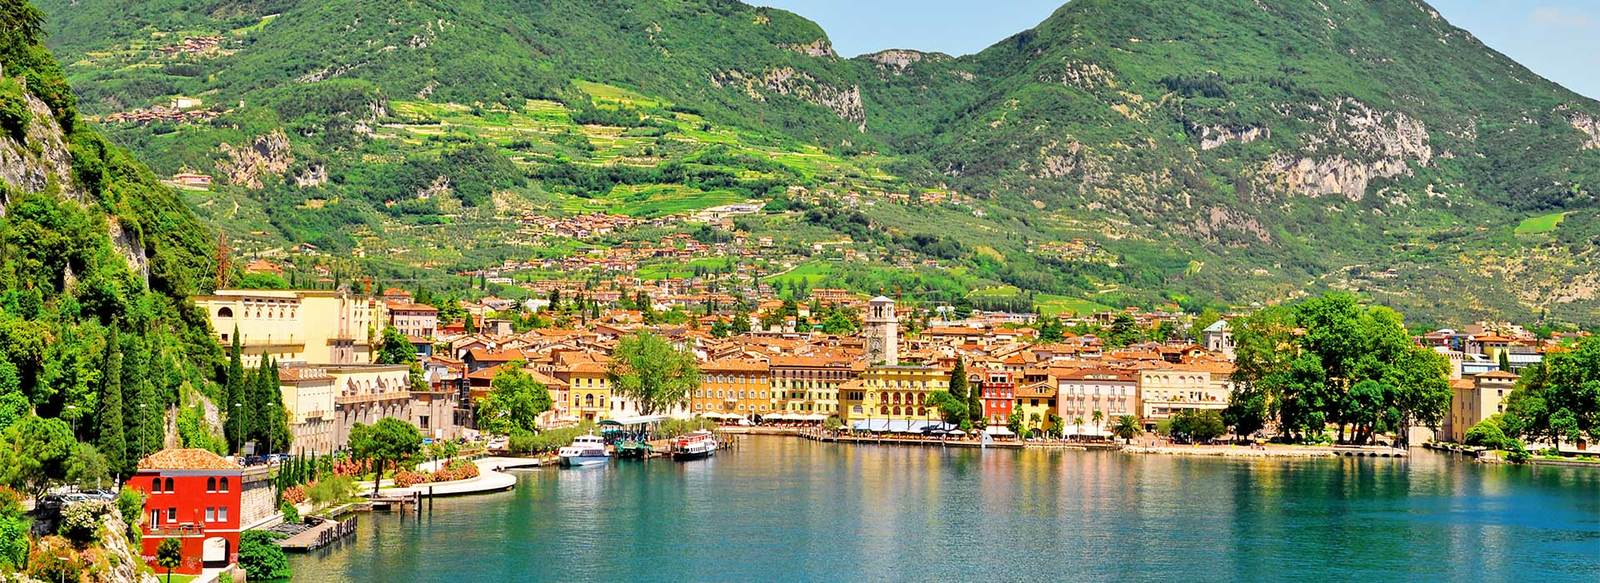 Cheap & chic, con vista sul lago di Garda